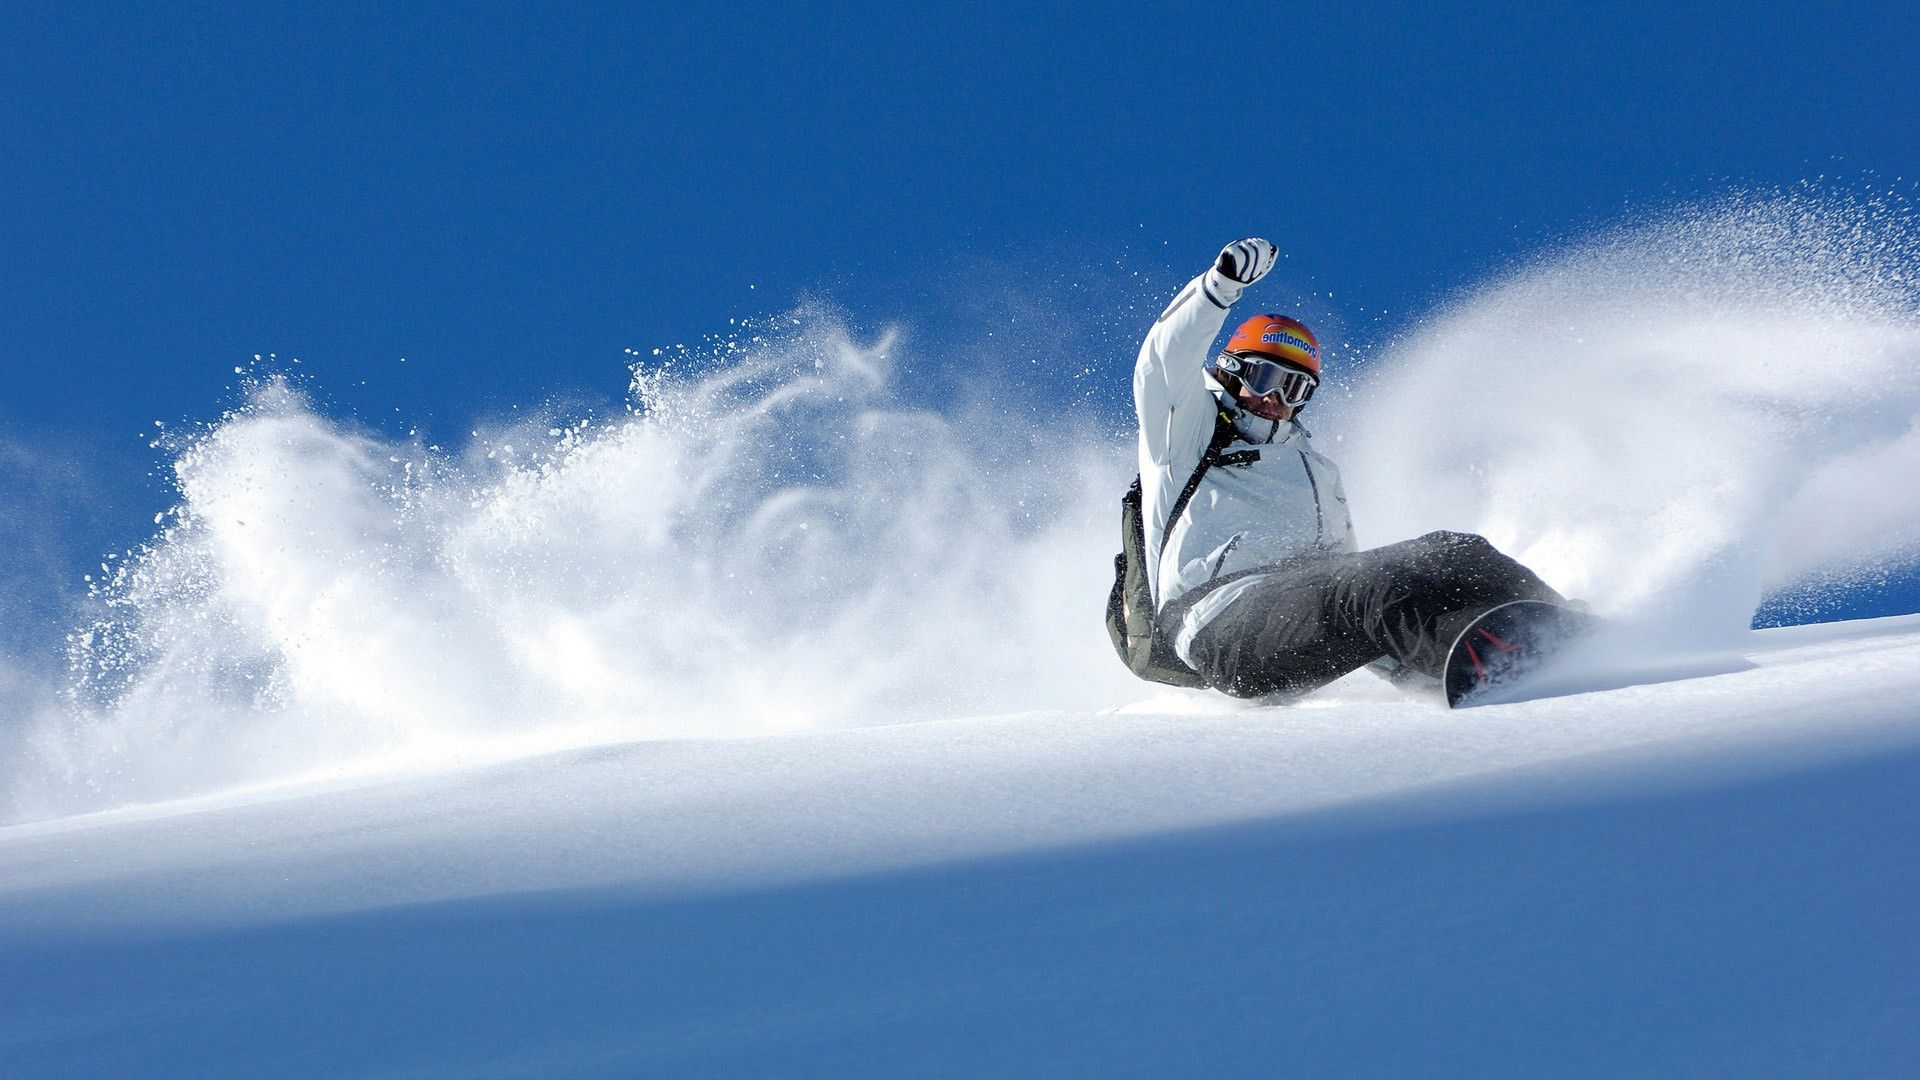 1920x1080 - Snowboarding Wallpapers 11